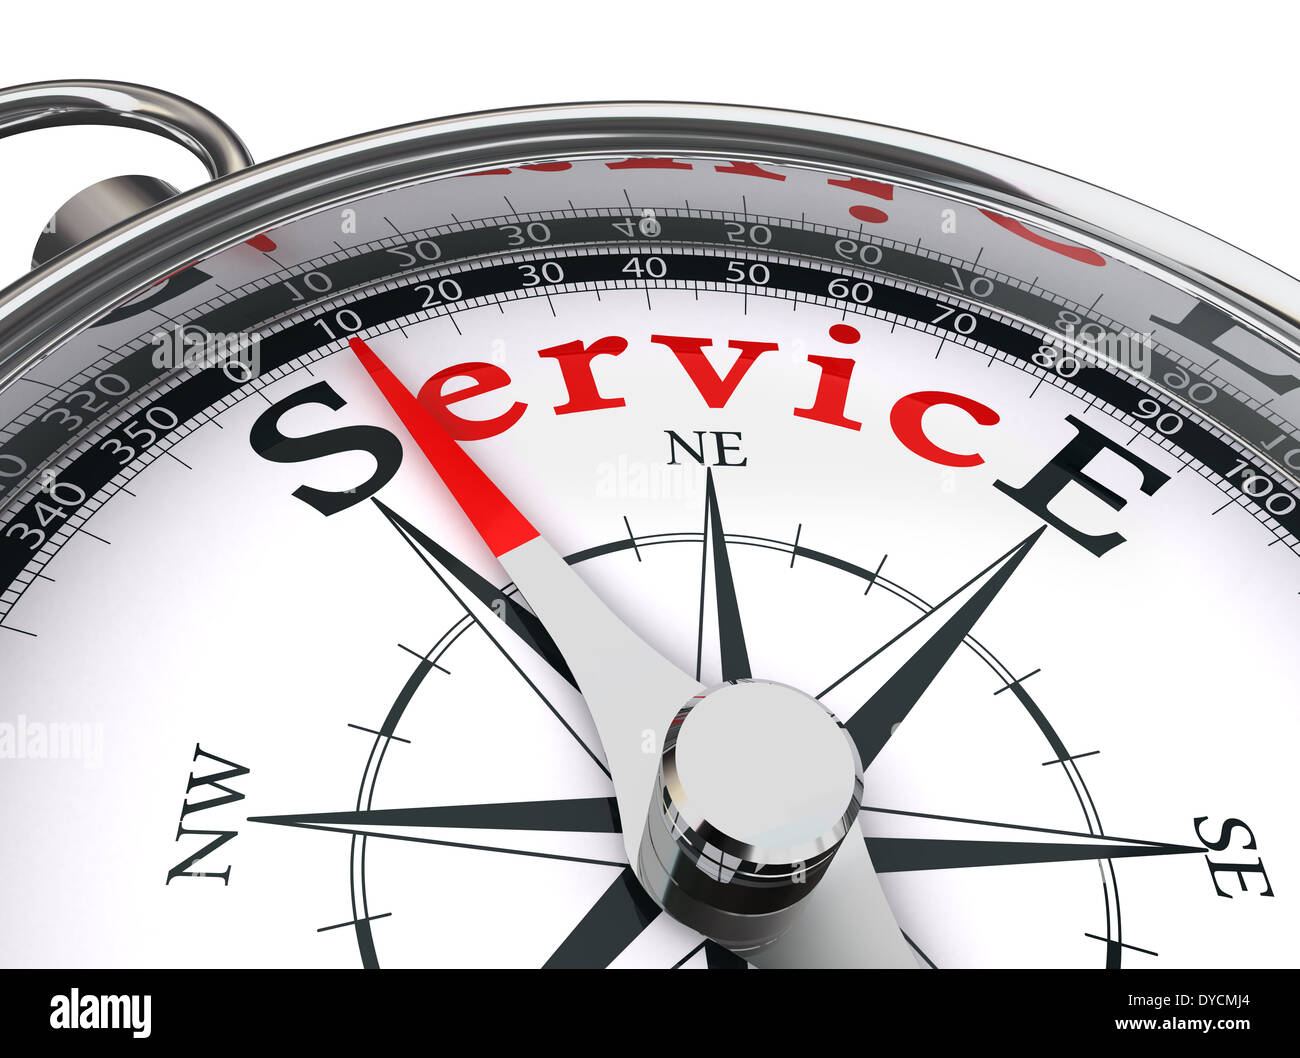 service red word indicated by compass conceptual image on white background - Stock Image